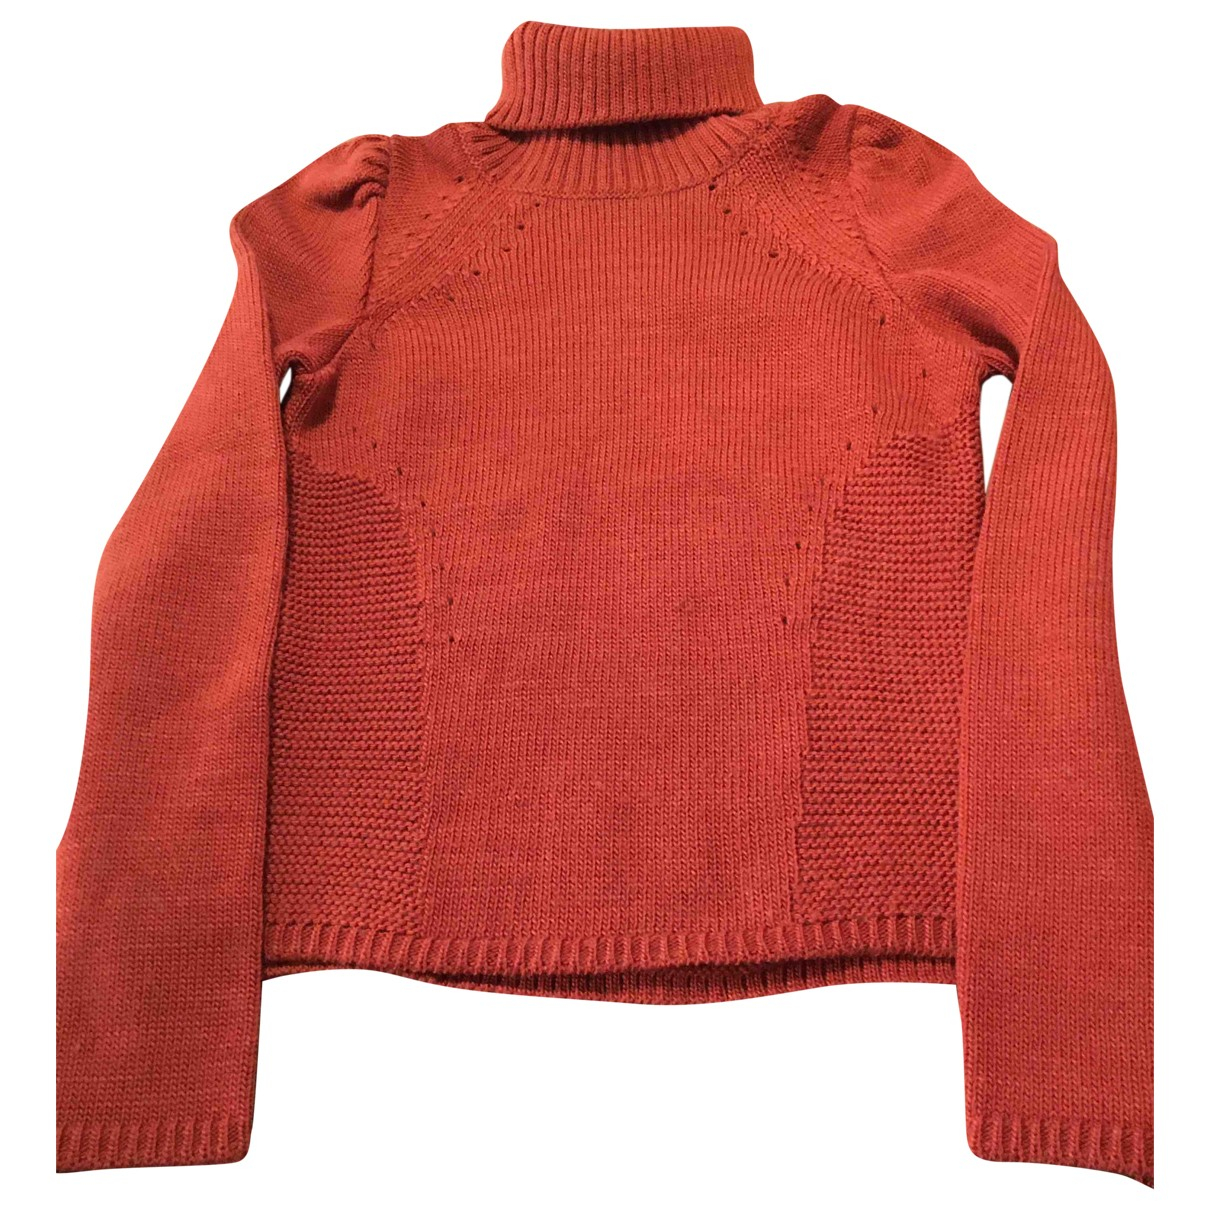 Isabel Marant N Orange Wool Knitwear for Women 36 FR